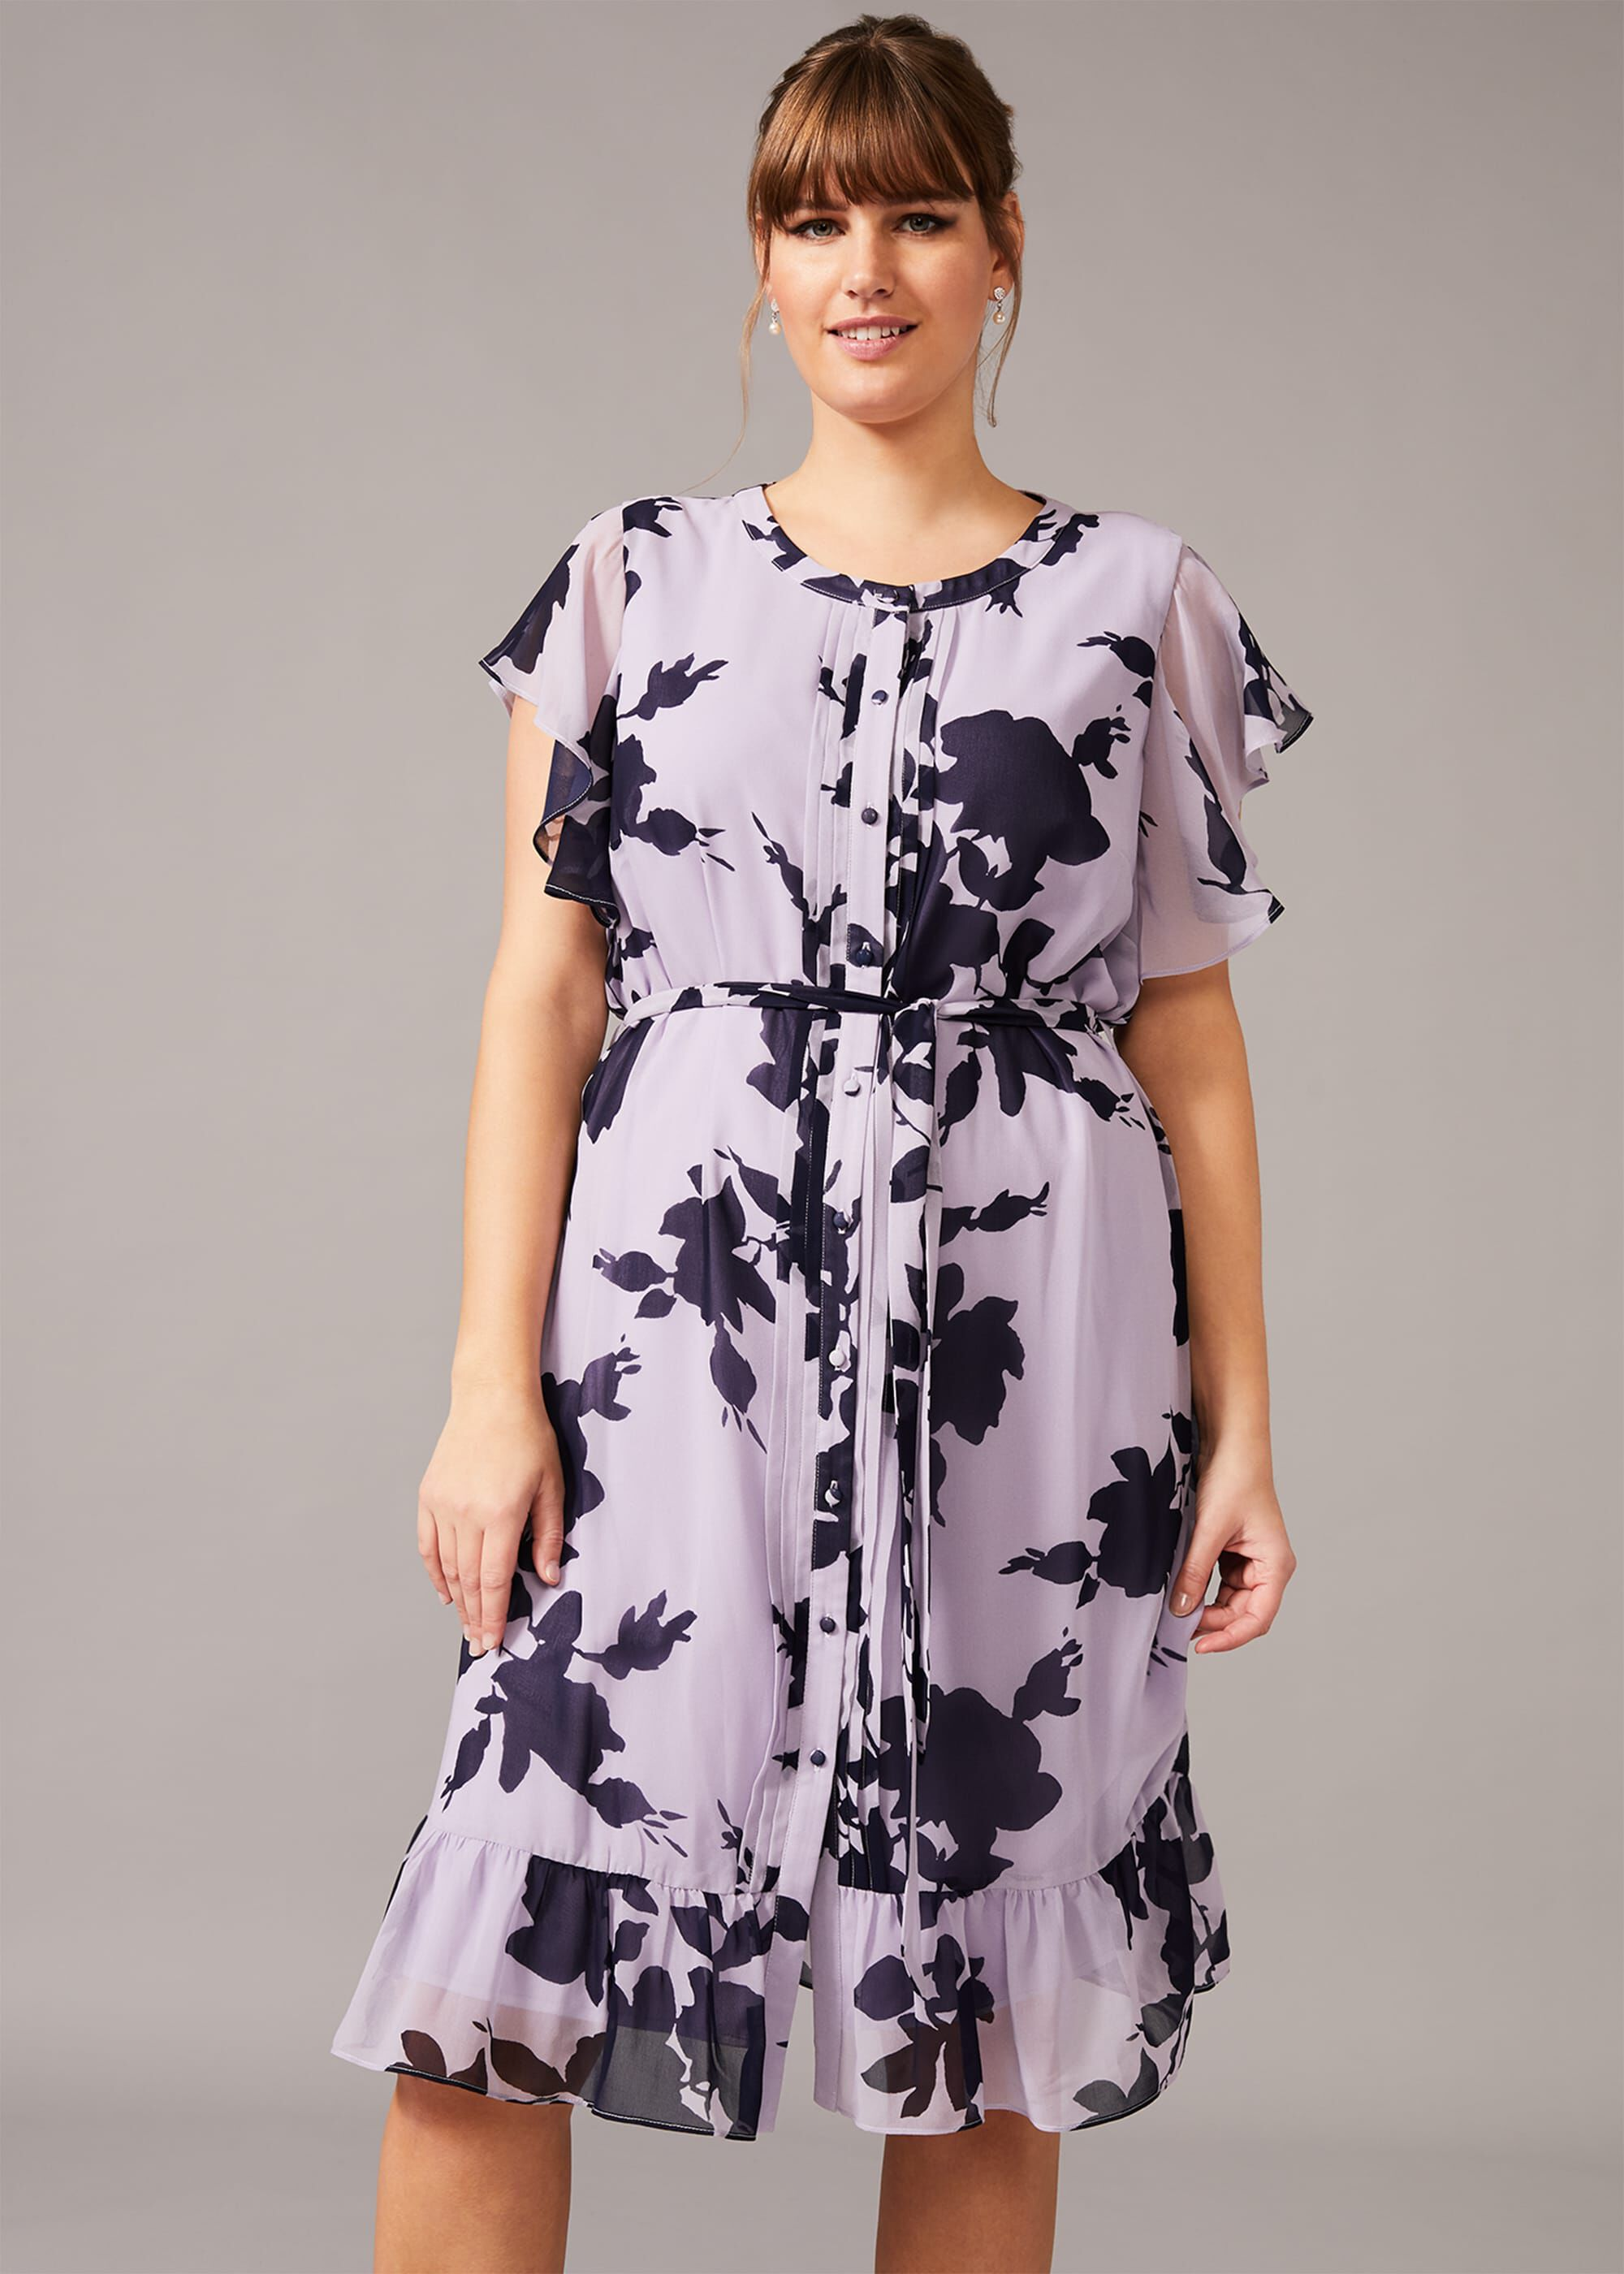 Studio 8 Aiden Floral Dress, Purple, Fit & Flare